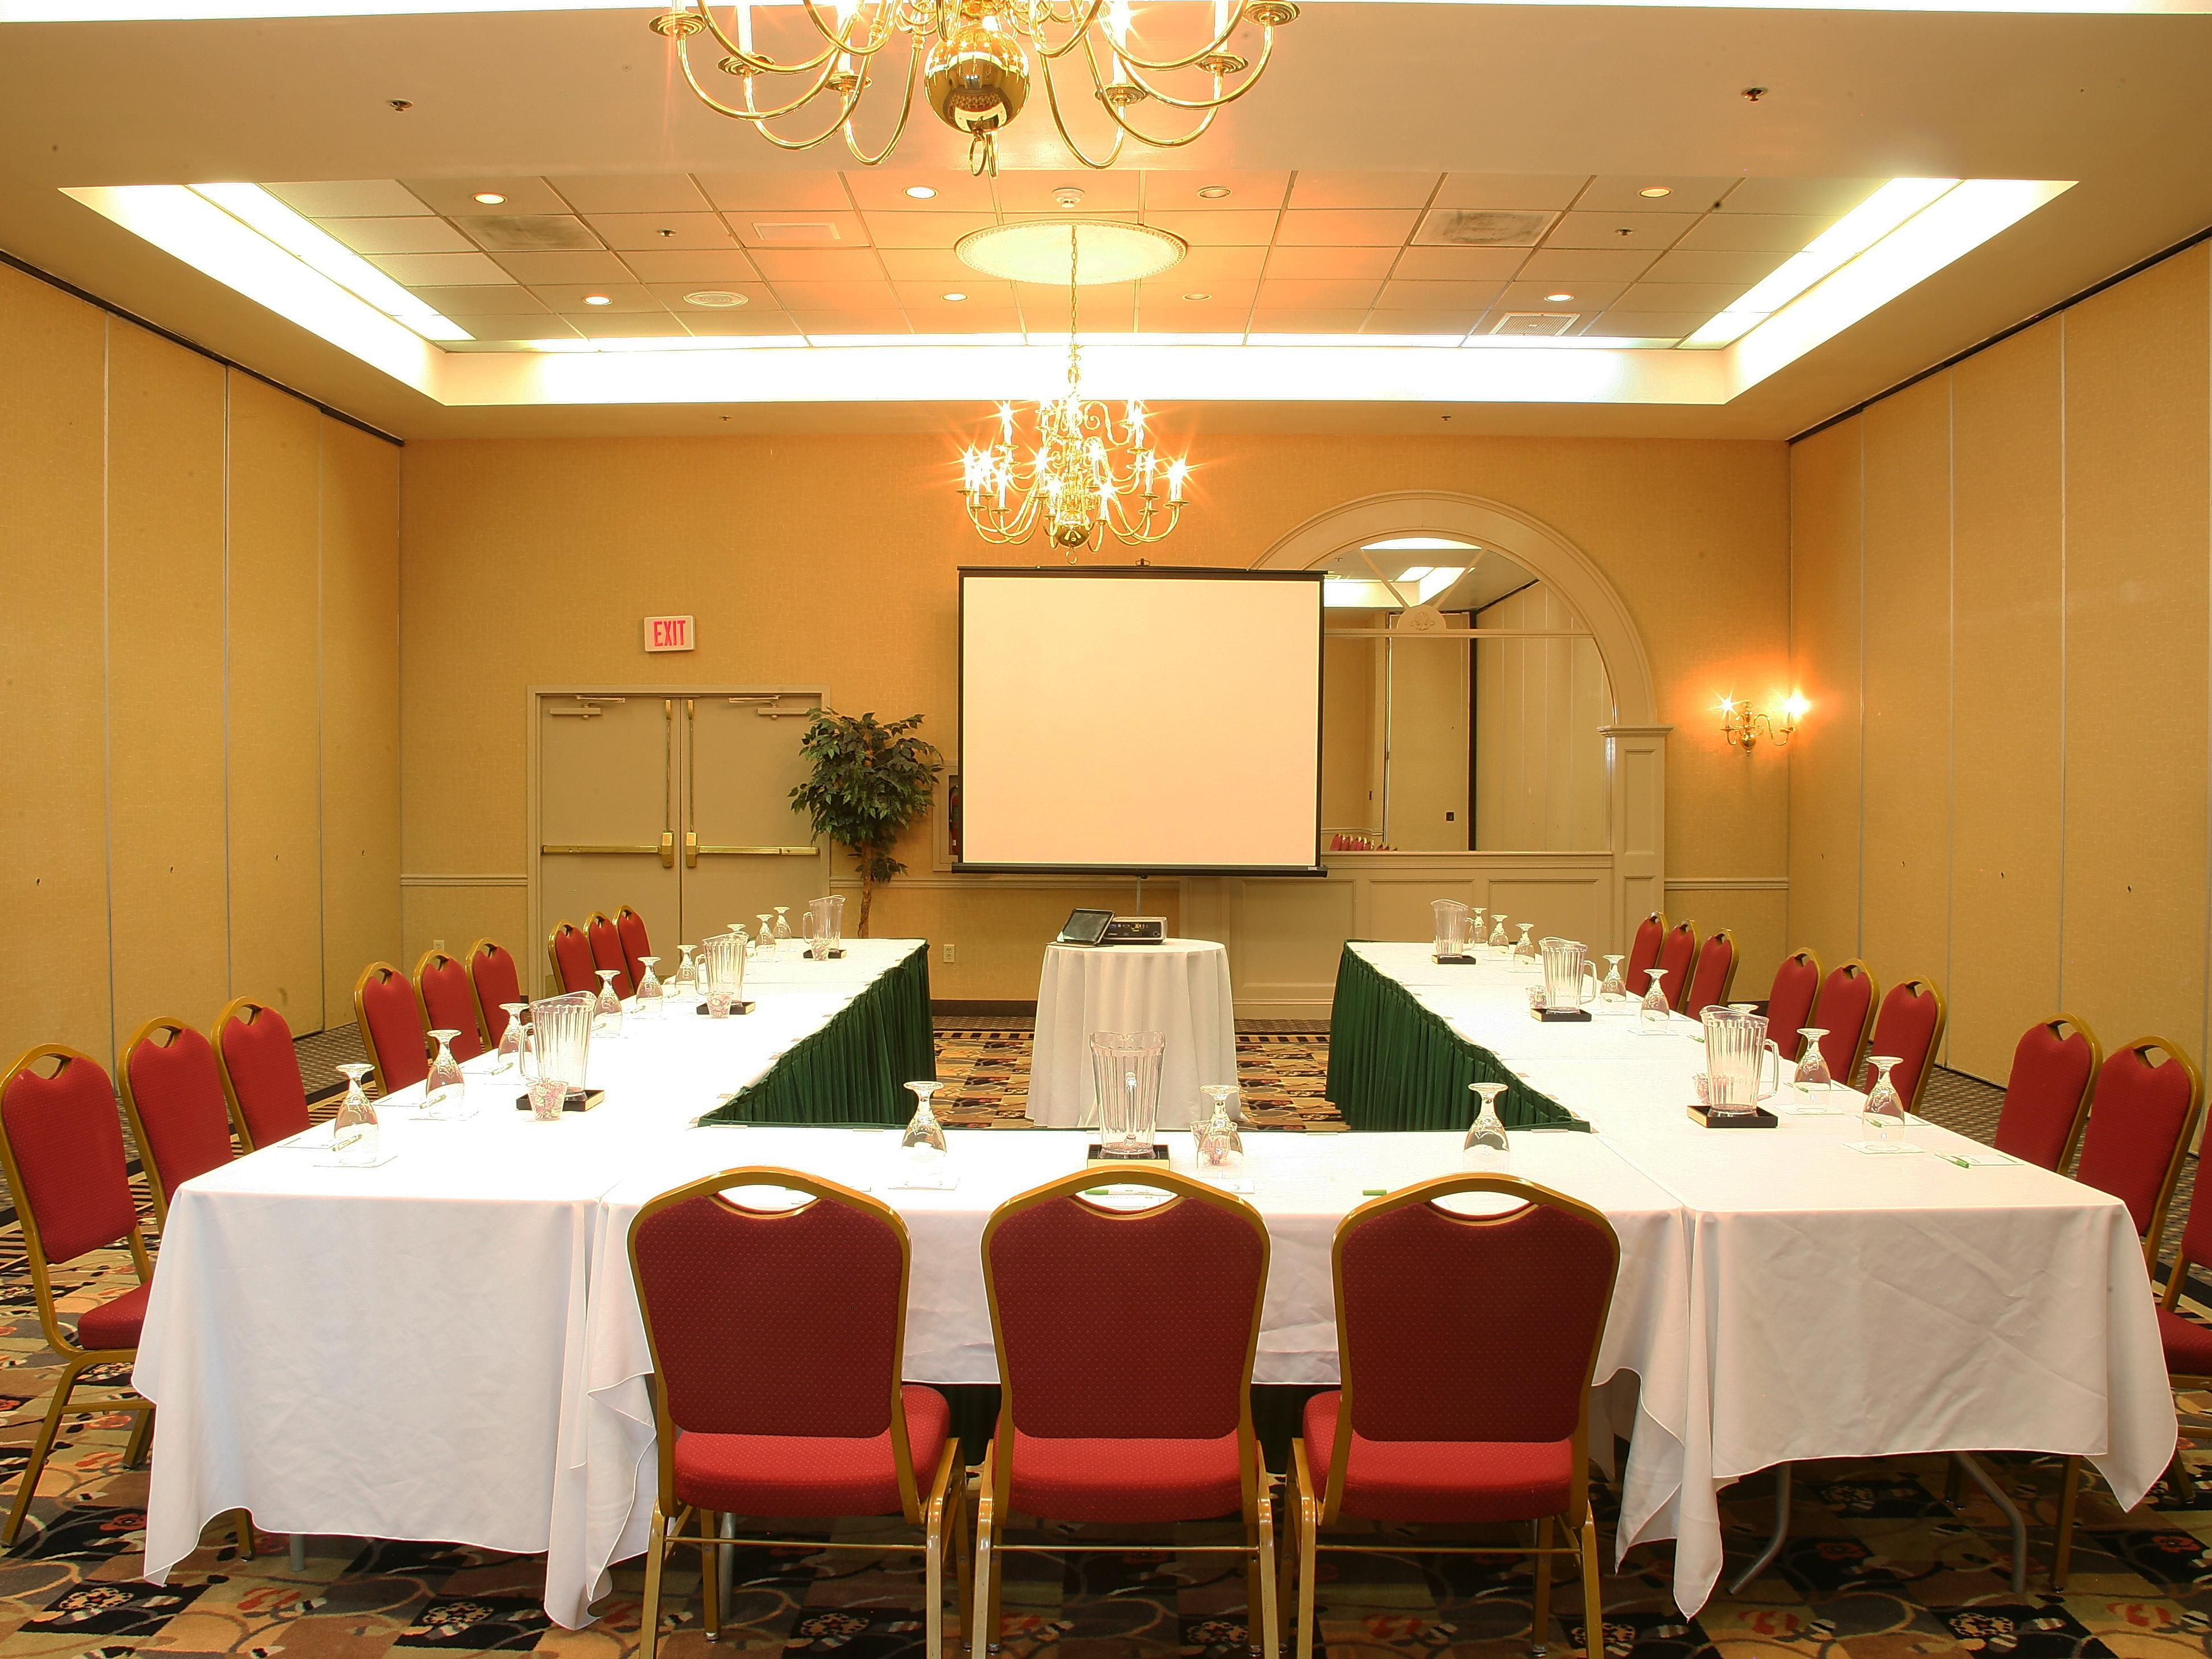 Meetings at the Holiday Inn Swedesboro